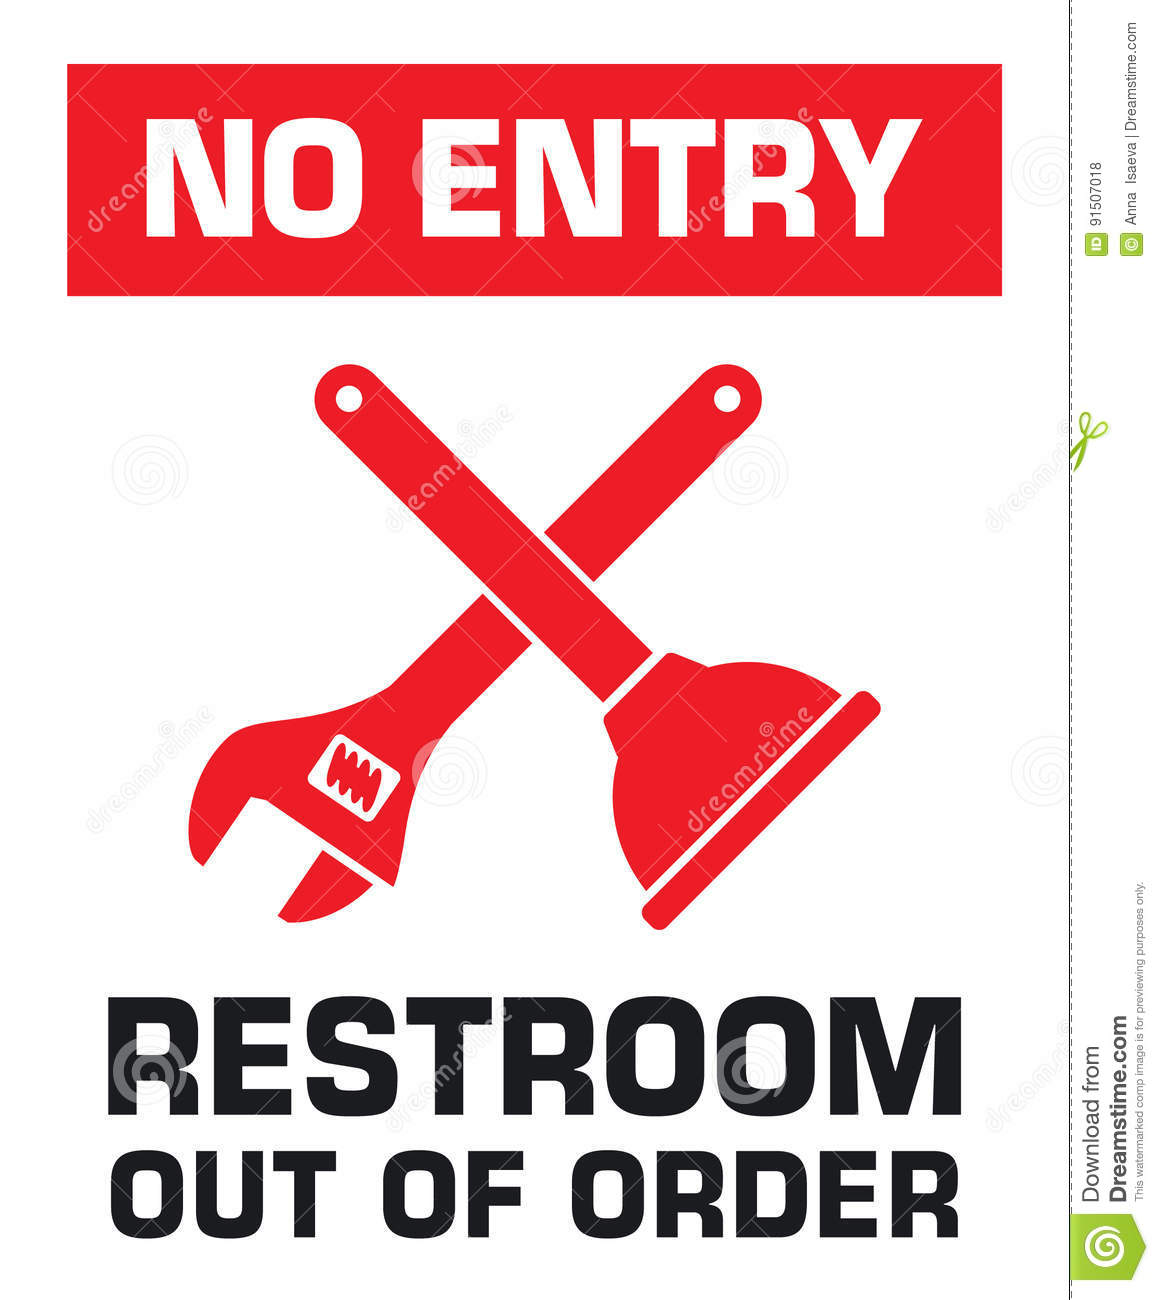 Bathroom Out Of Order no bathroom sign